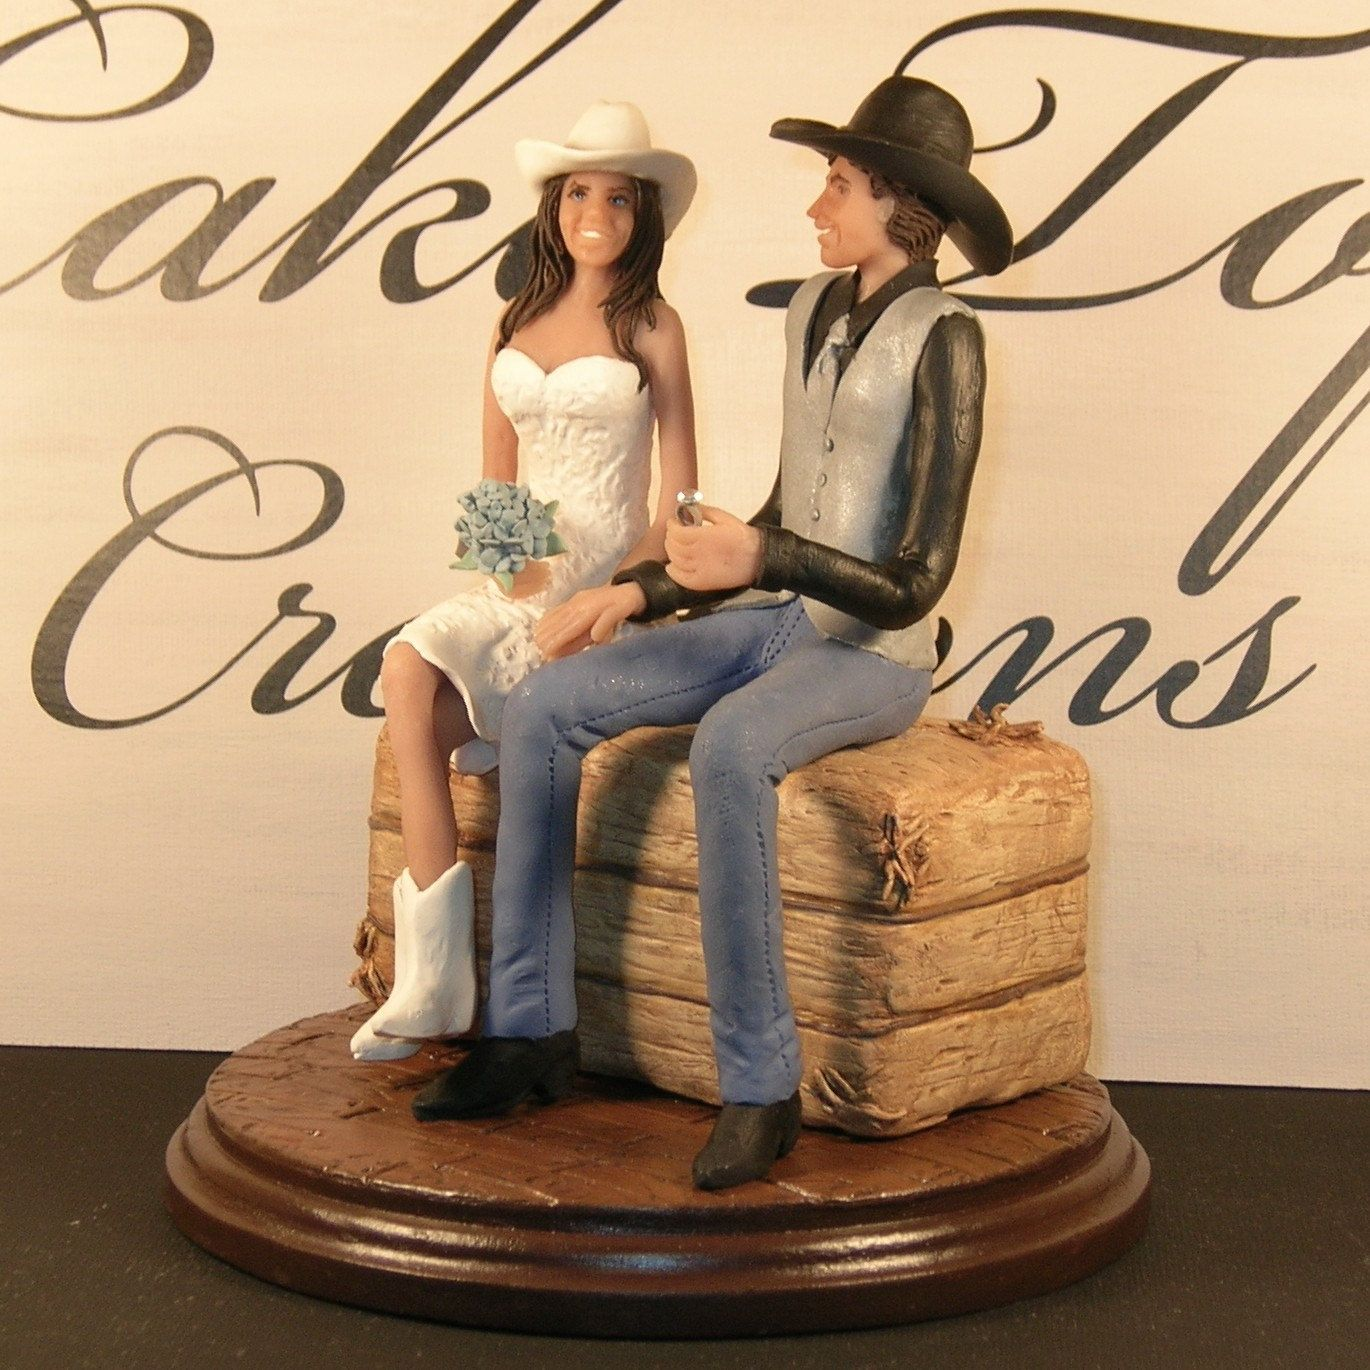 western wedding ideas western wedding cake toppers bride and groom Country Western Wedding Cake Topper Couple